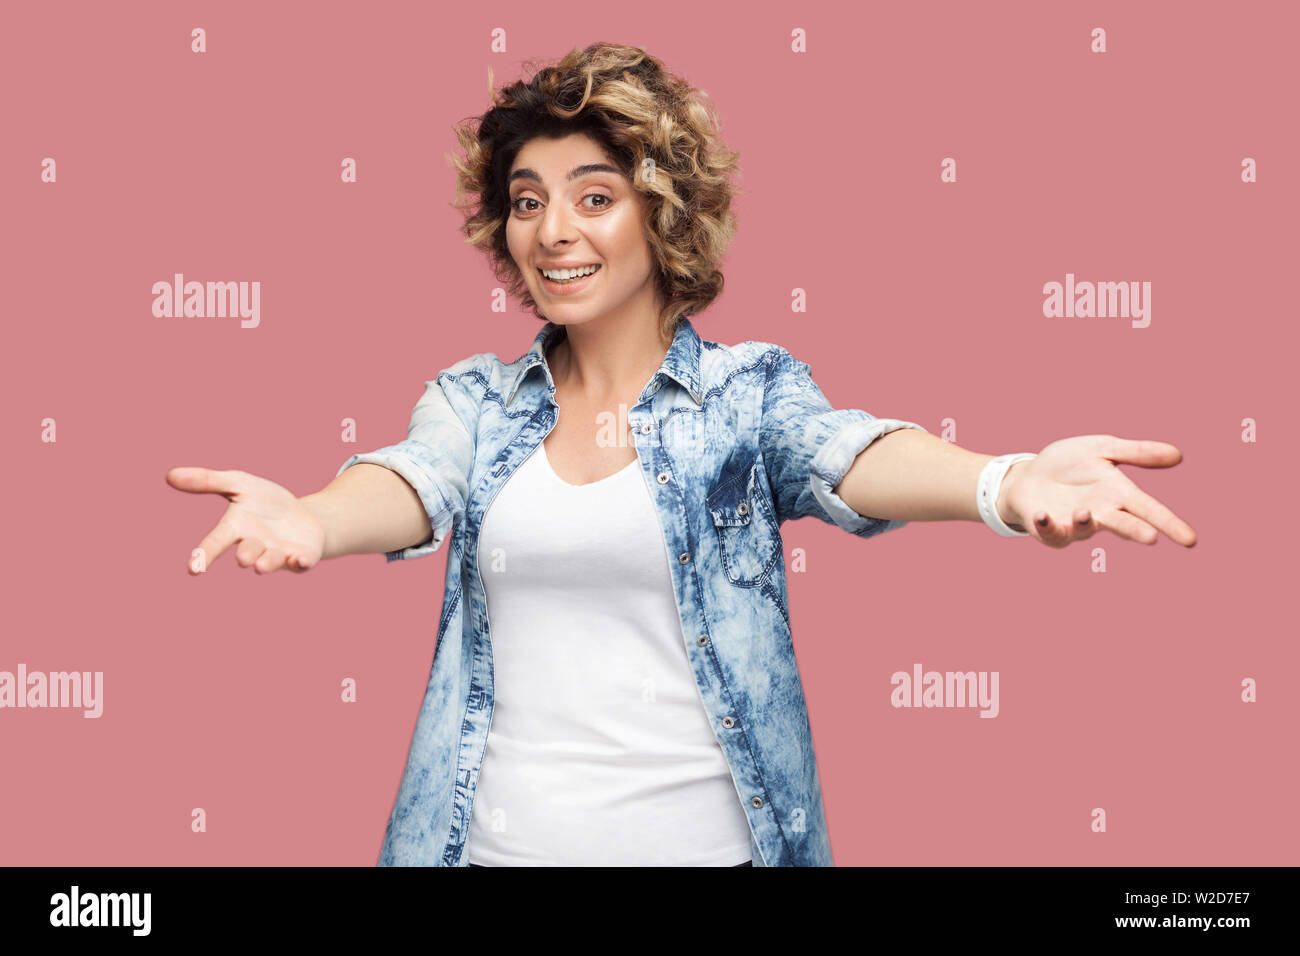 Portrait of happy young woman with curly hair in casual shirt standing with wide raised arms and looking at camera with toothy smile sharing something Stock Photo